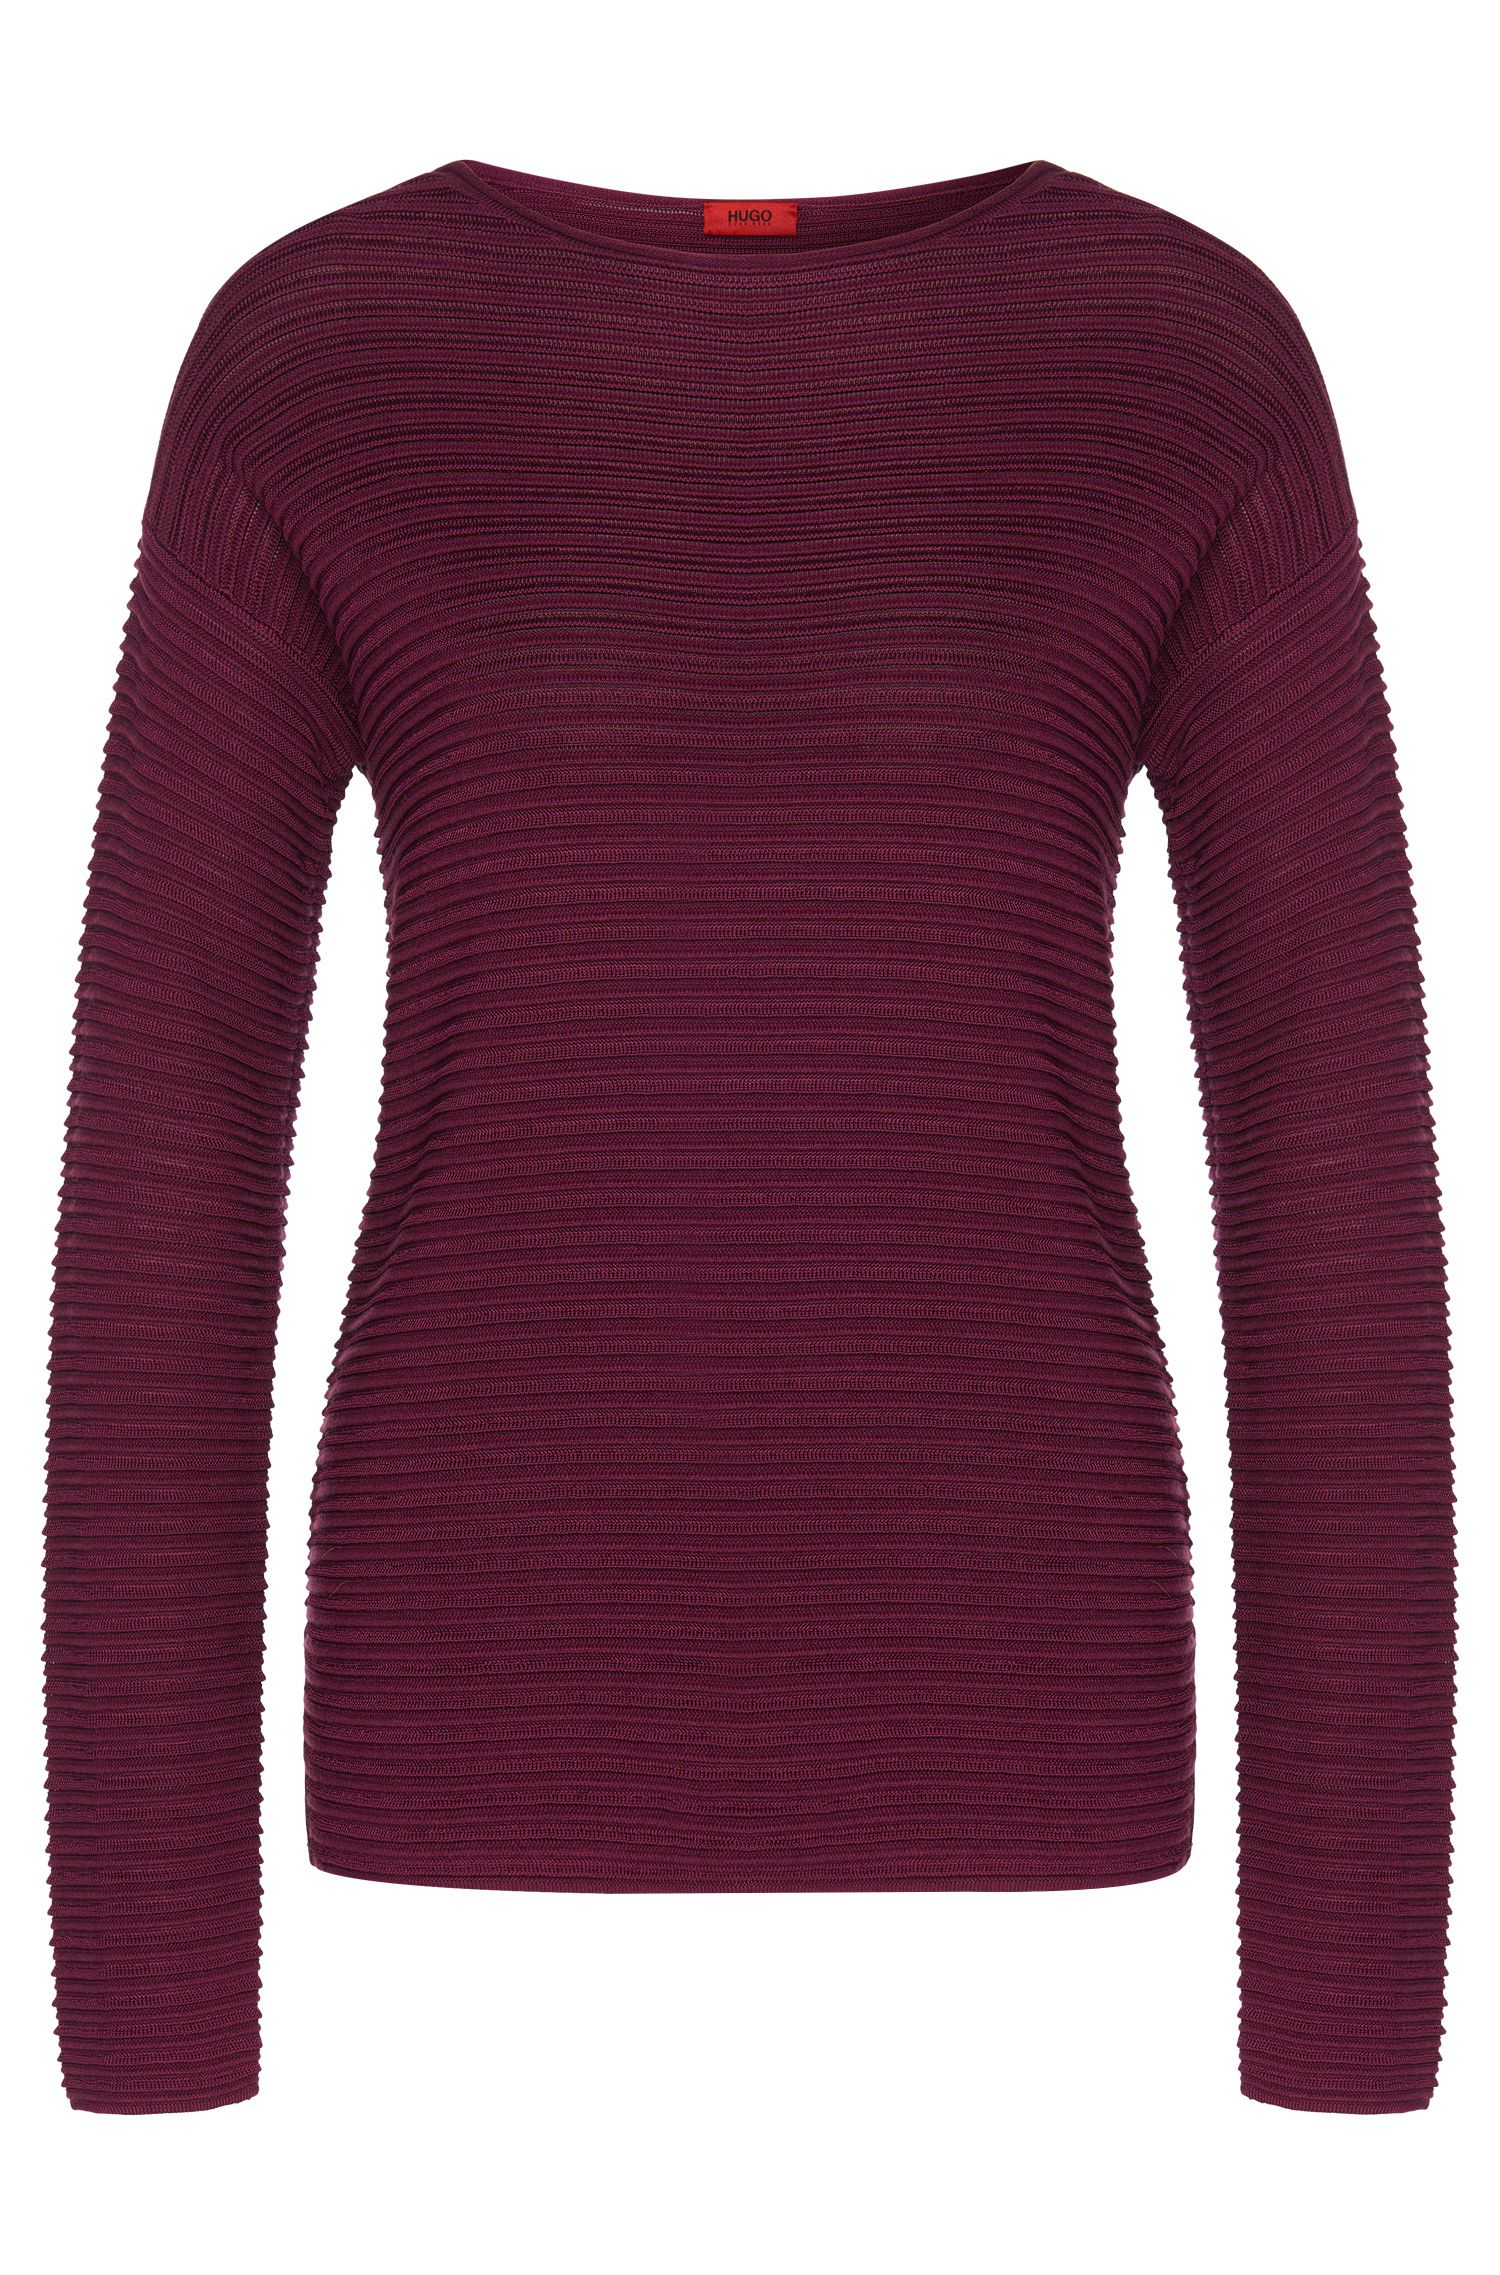 Sweater in stretch viscose blend with silk, cotton and cashmere: 'Suria'